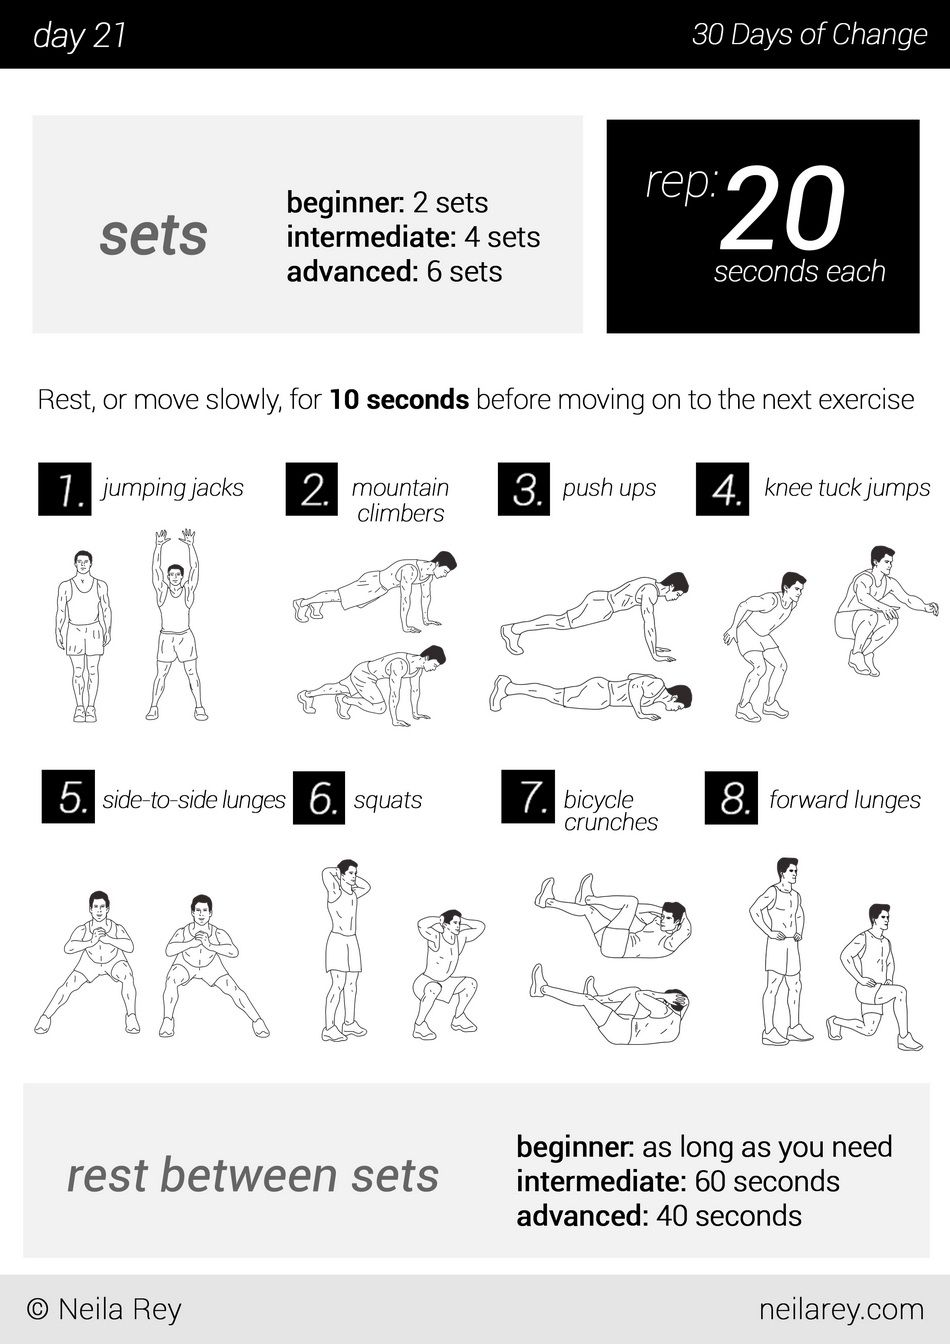 No equipment 30 day workout program | The Best Article Every Day